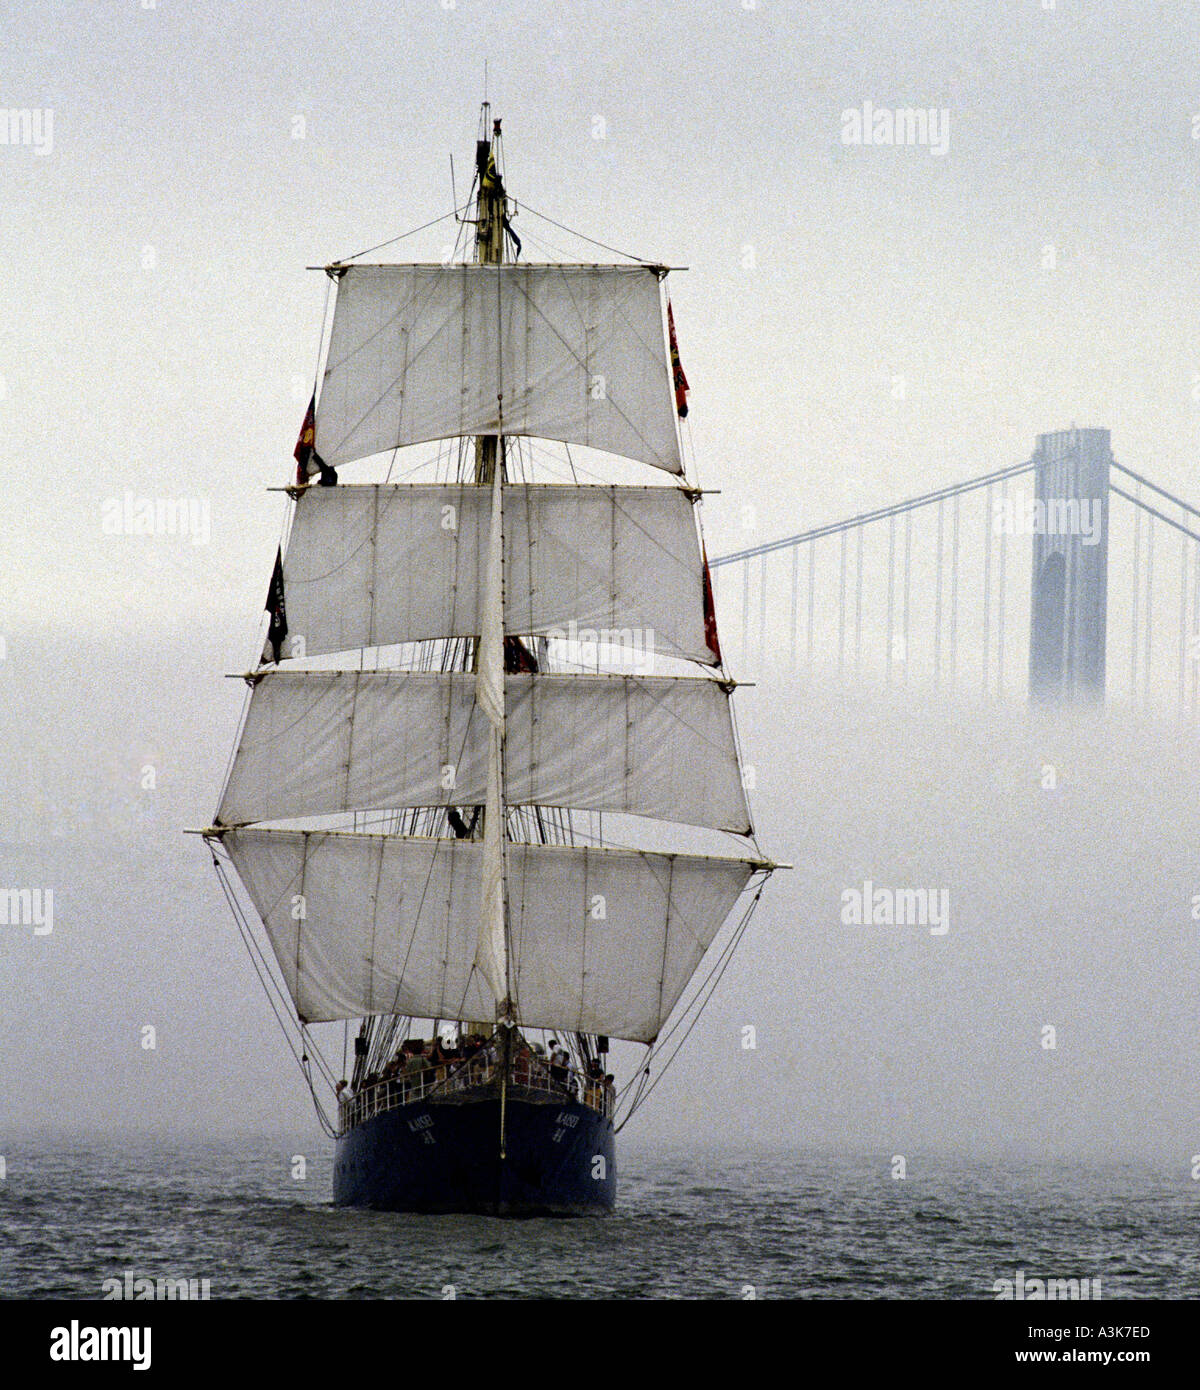 Tumblr Niejpn N H Rwkmepo further Dsc together with Exmouth Pic as well Dana Air furthermore A Tall Ship Sails Into New York Harbour With The Verrazano Bridge A K Ed. on eagle harbour follow up